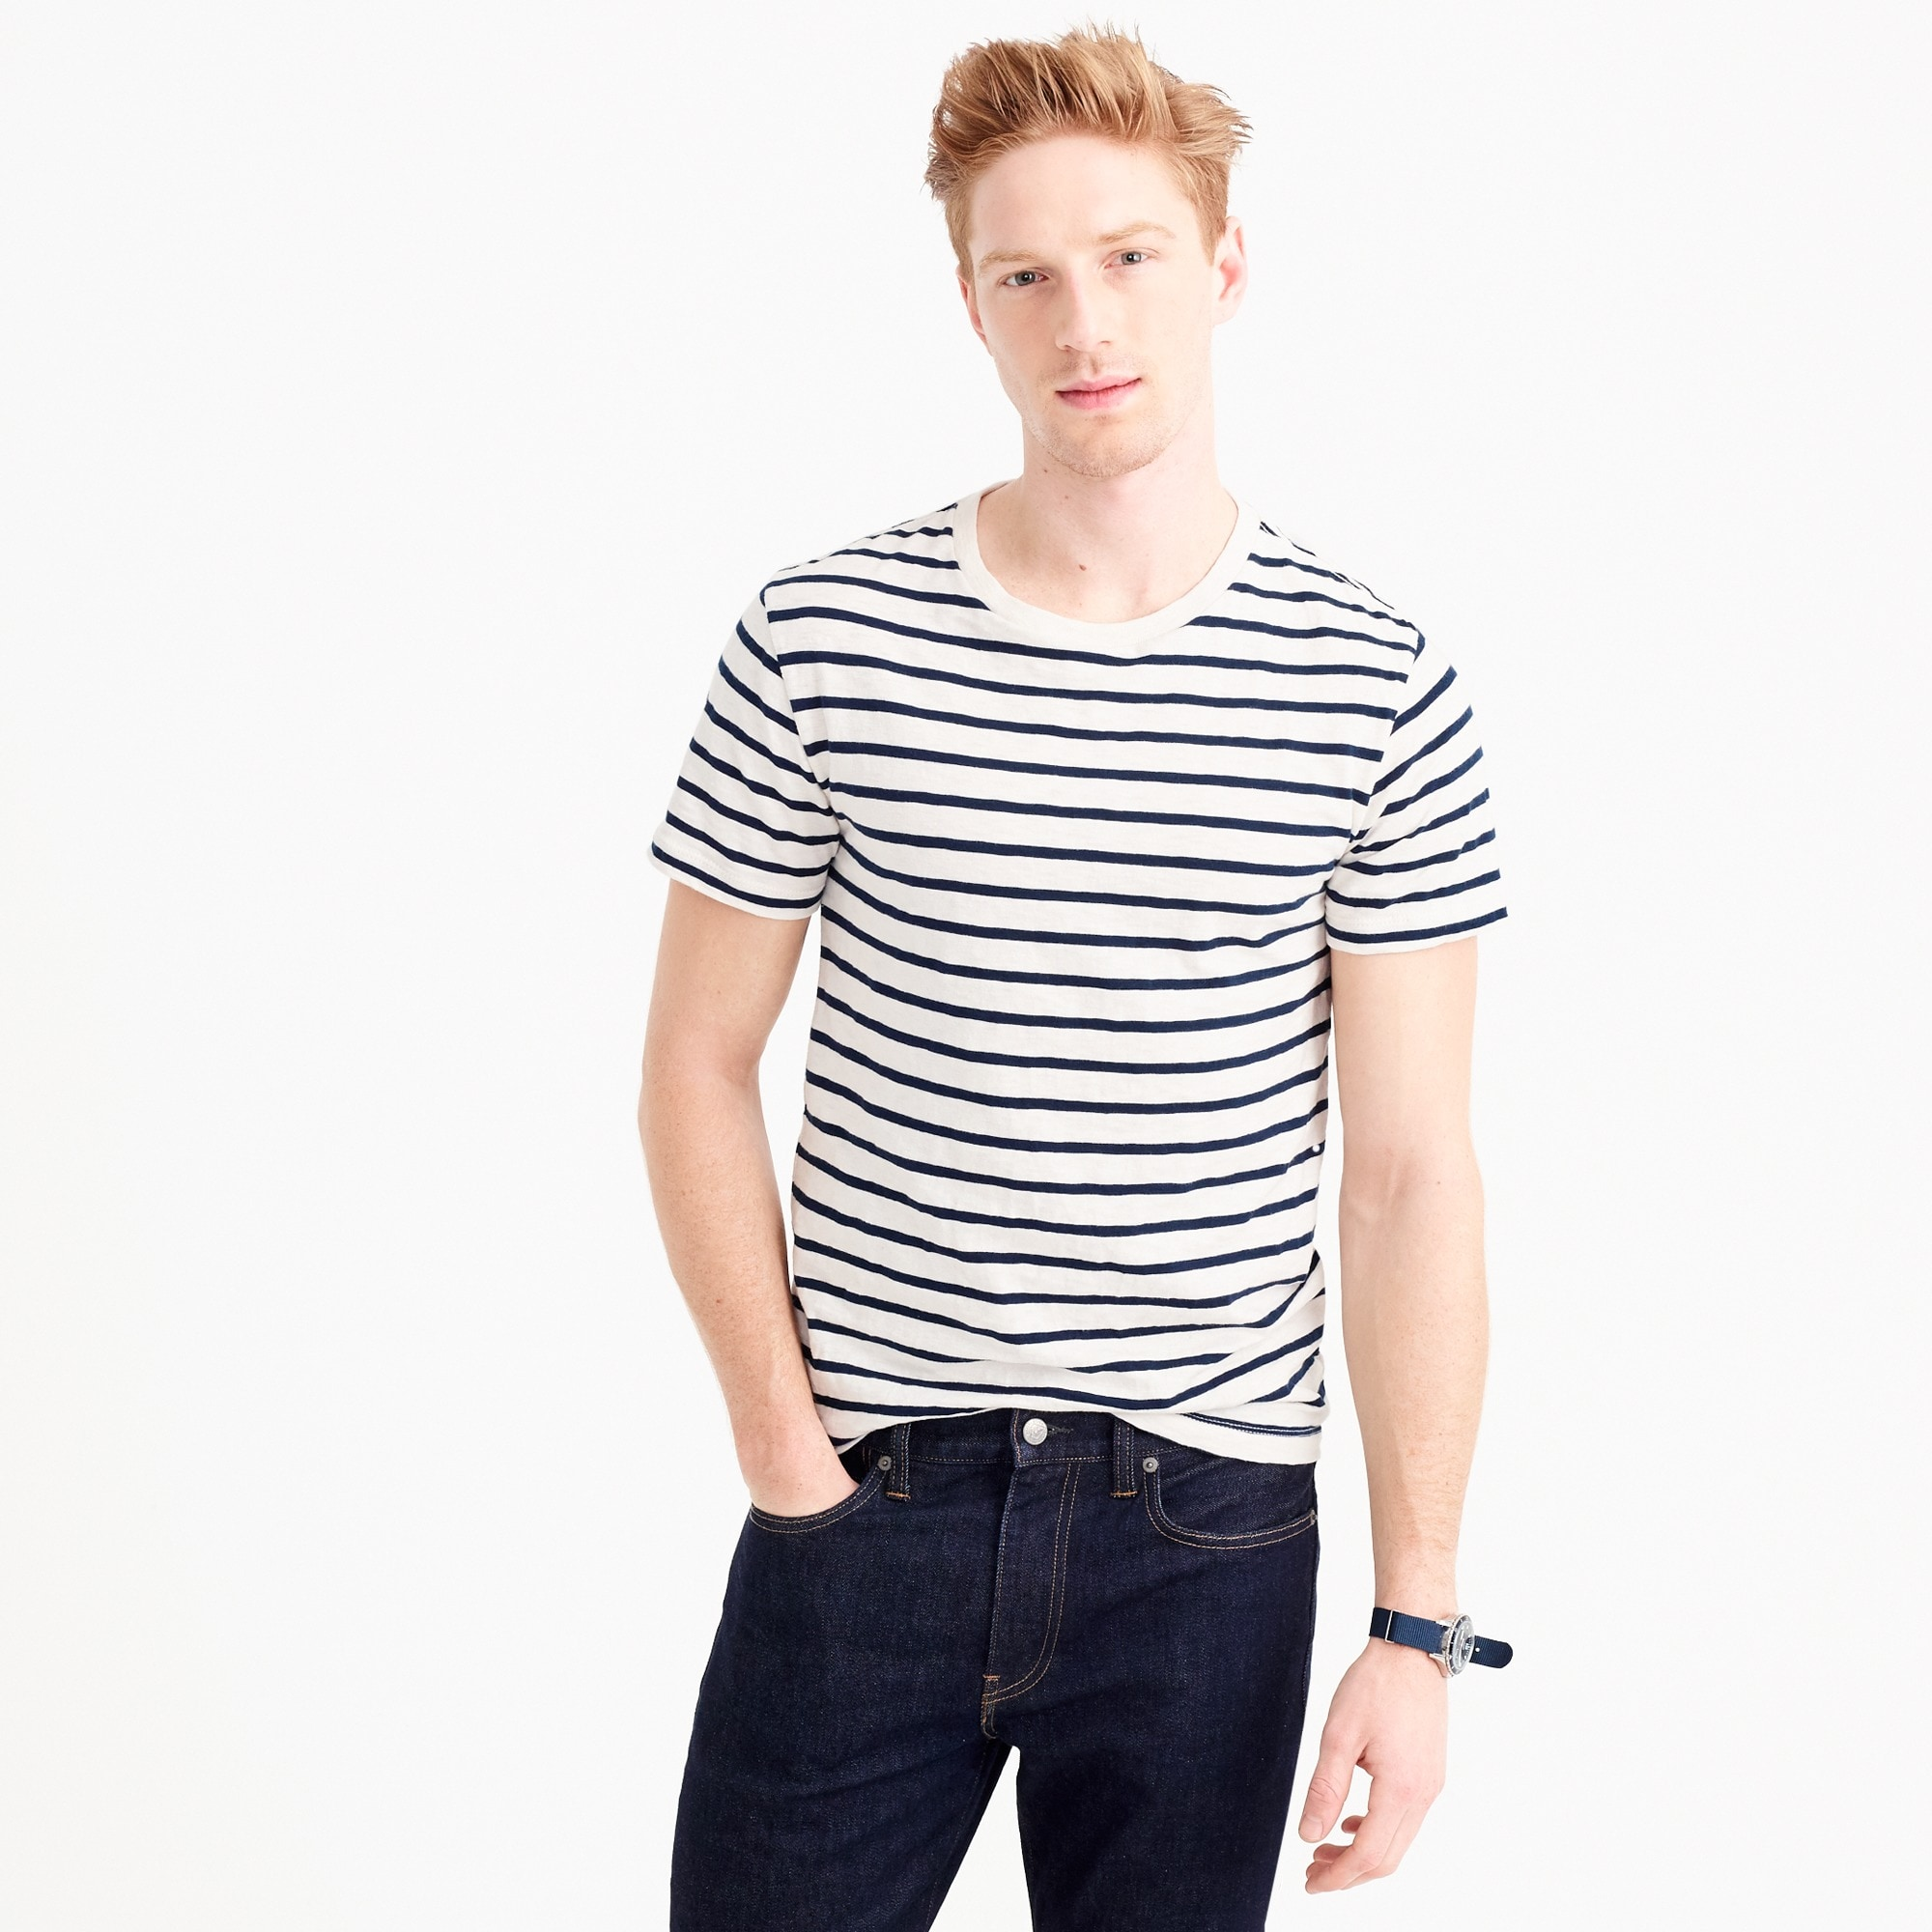 Slub cotton deck-striped T-shirt men new arrivals c